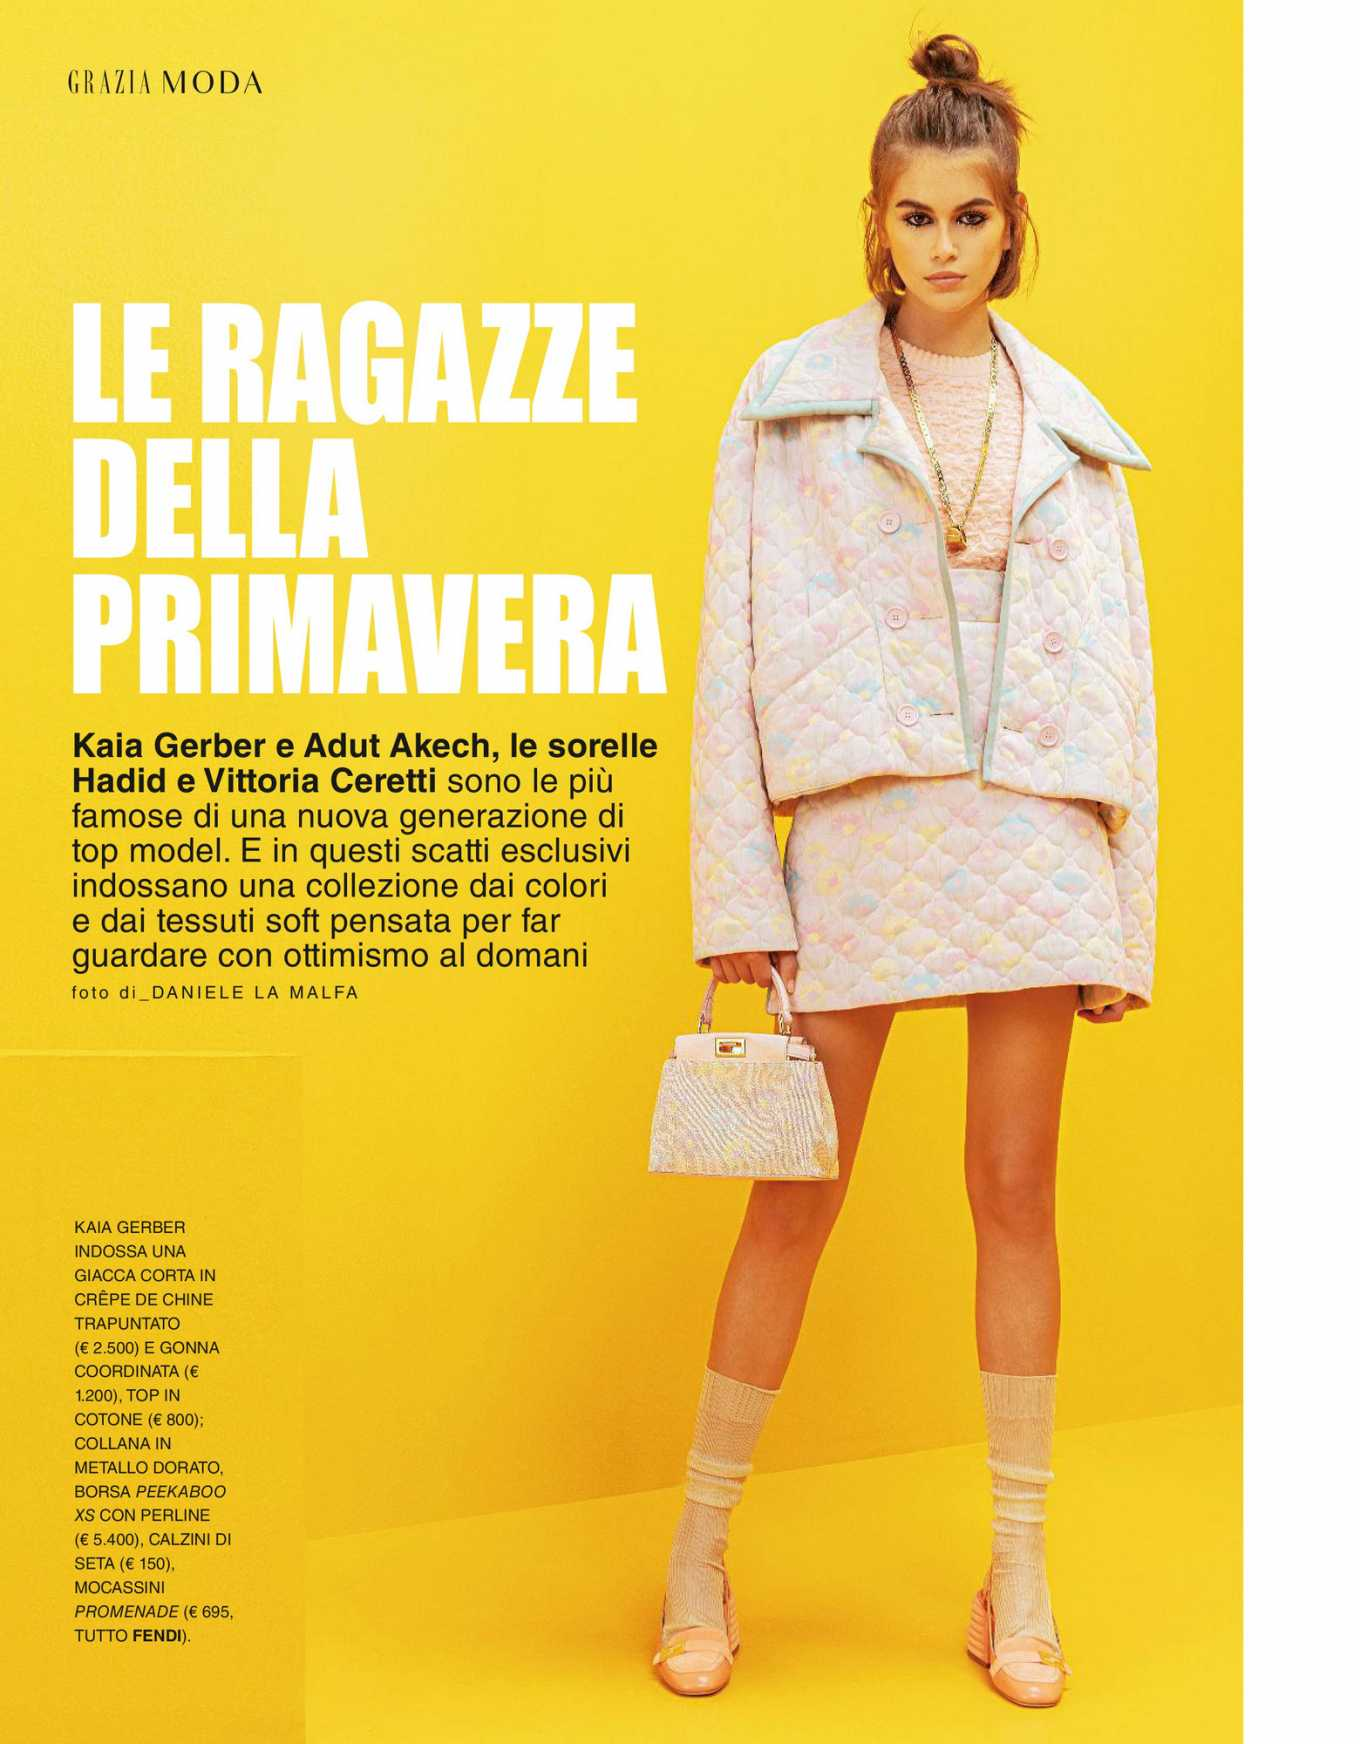 Kaia Gerber in Grazia Italy Magazine - April 2020